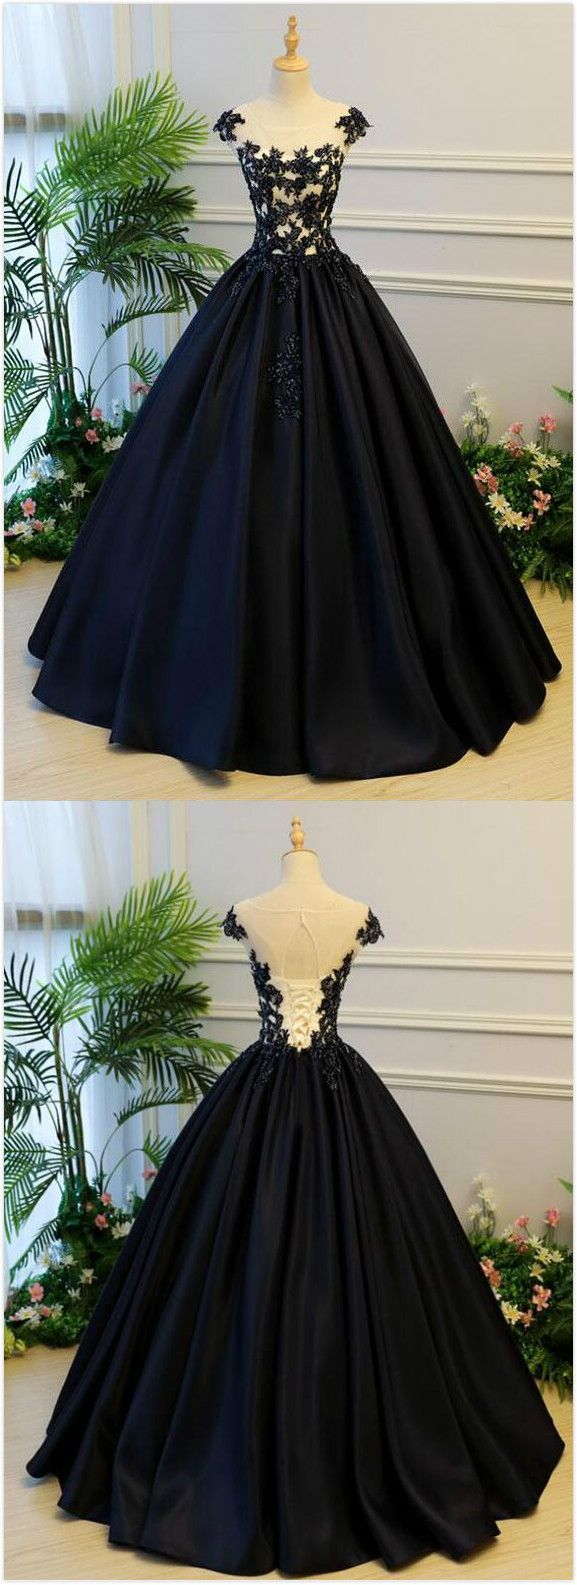 Generous prom dressball gown prom dressstain prom dresslong party